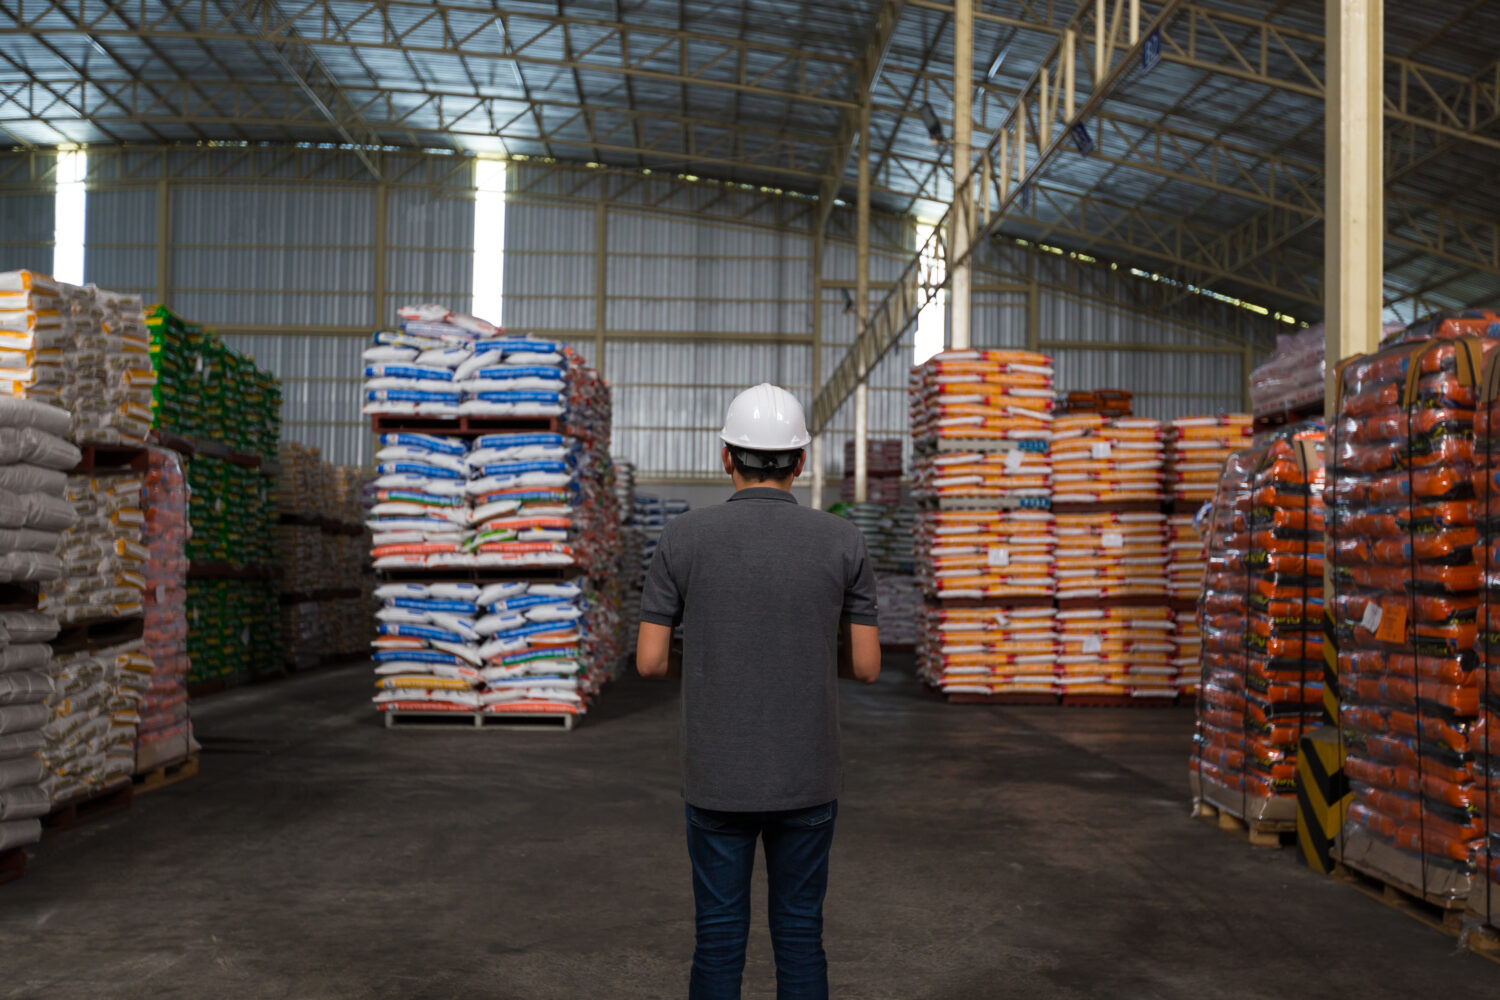 Warehouse worker looking at stock